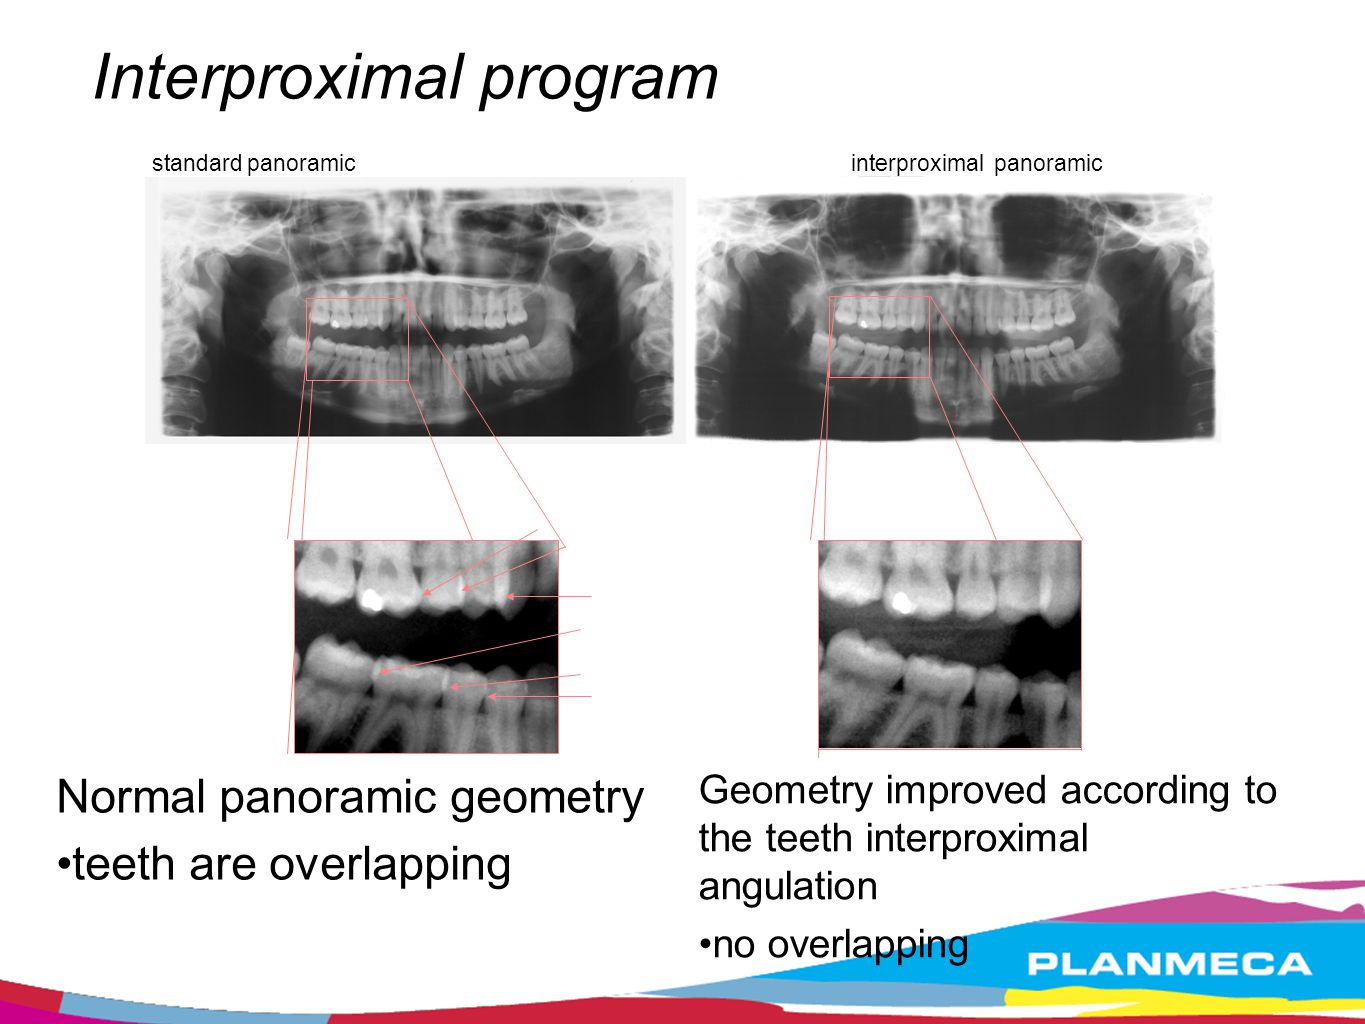 Interproximal program